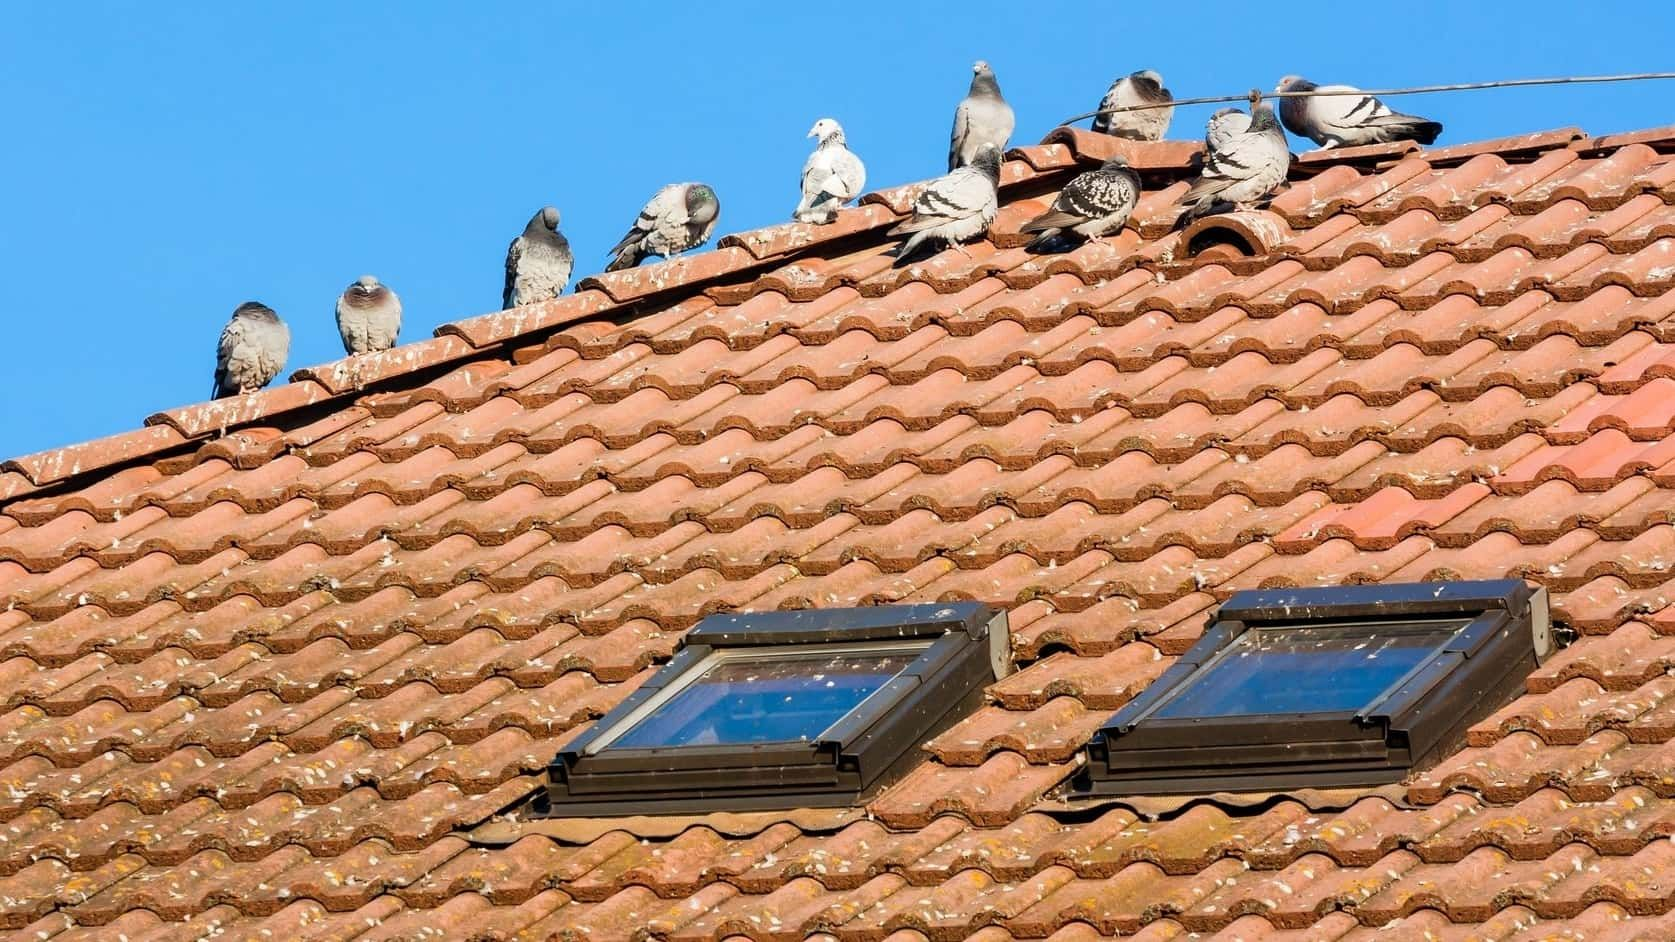 Do Birds Cause Roof Damage Bed bugs treatment, Wasp nest